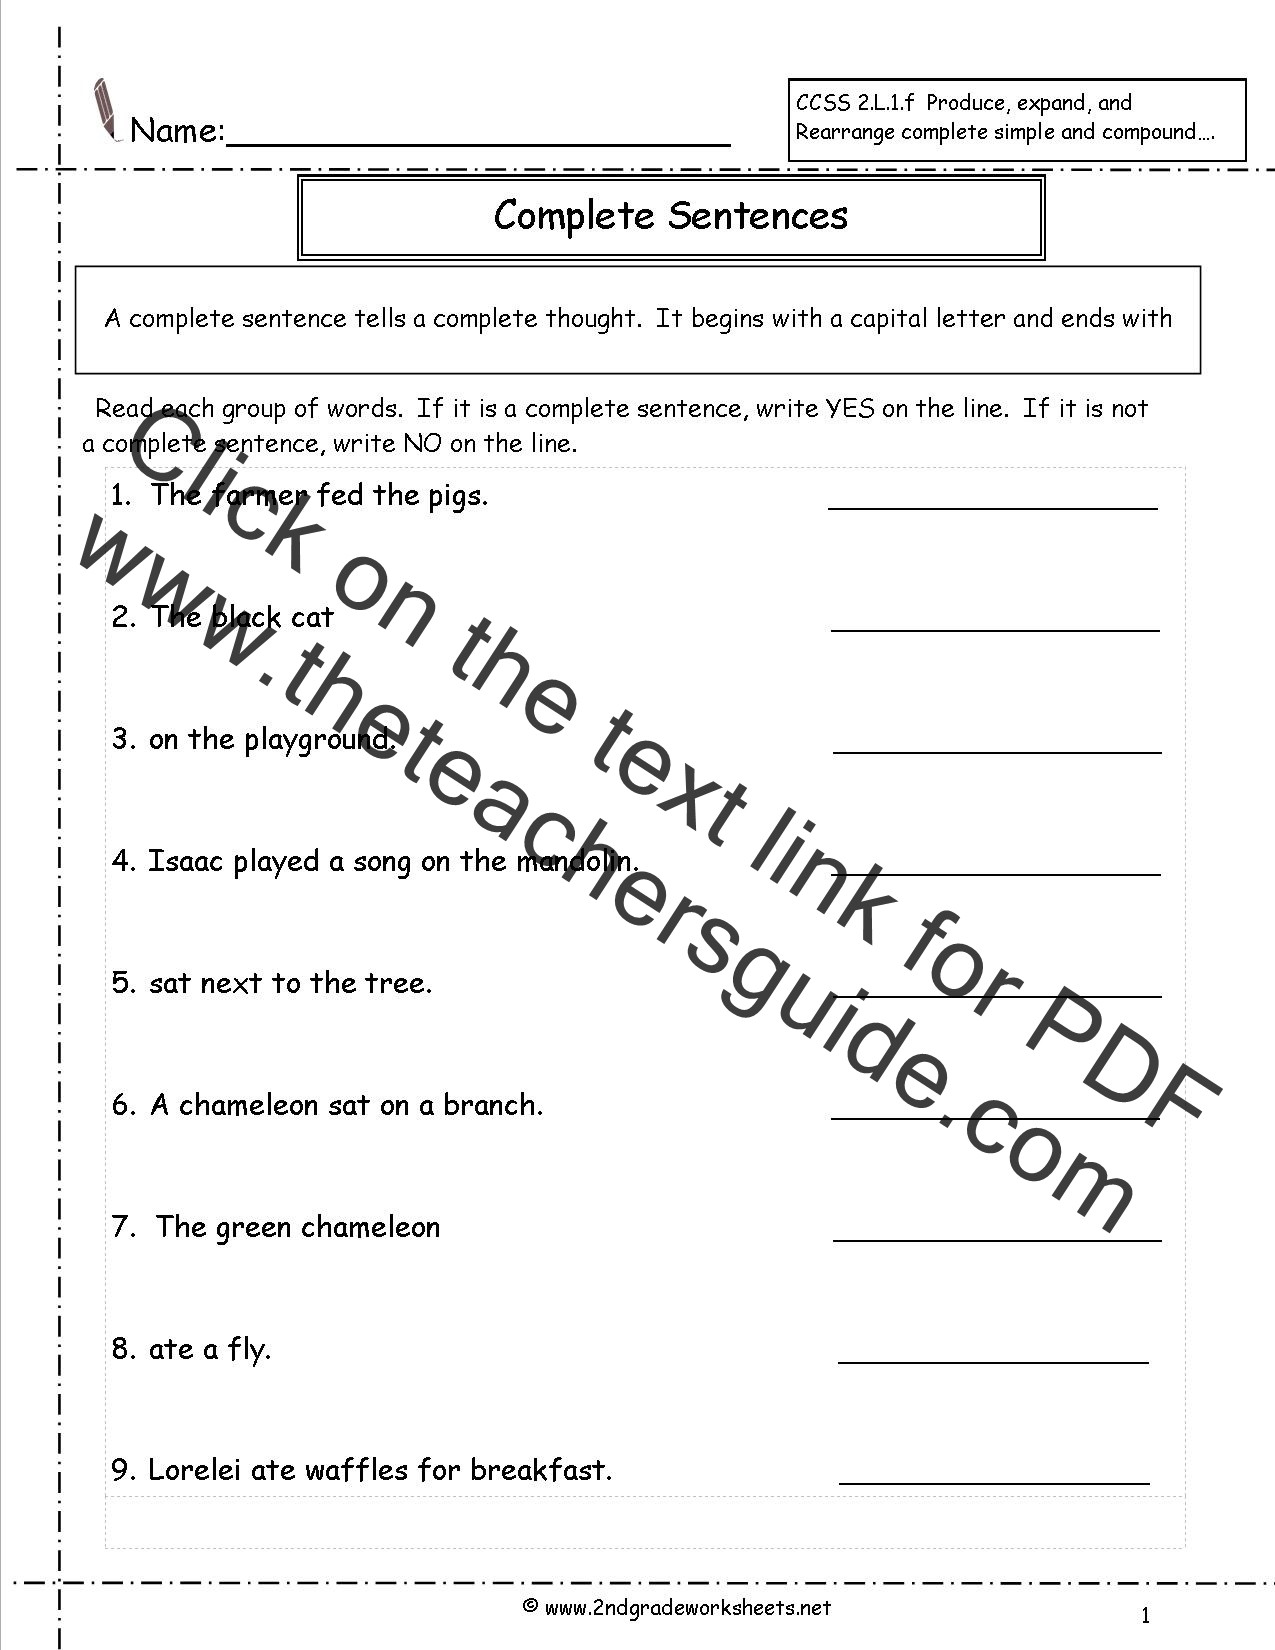 Simple and Compound Sentence Worksheet